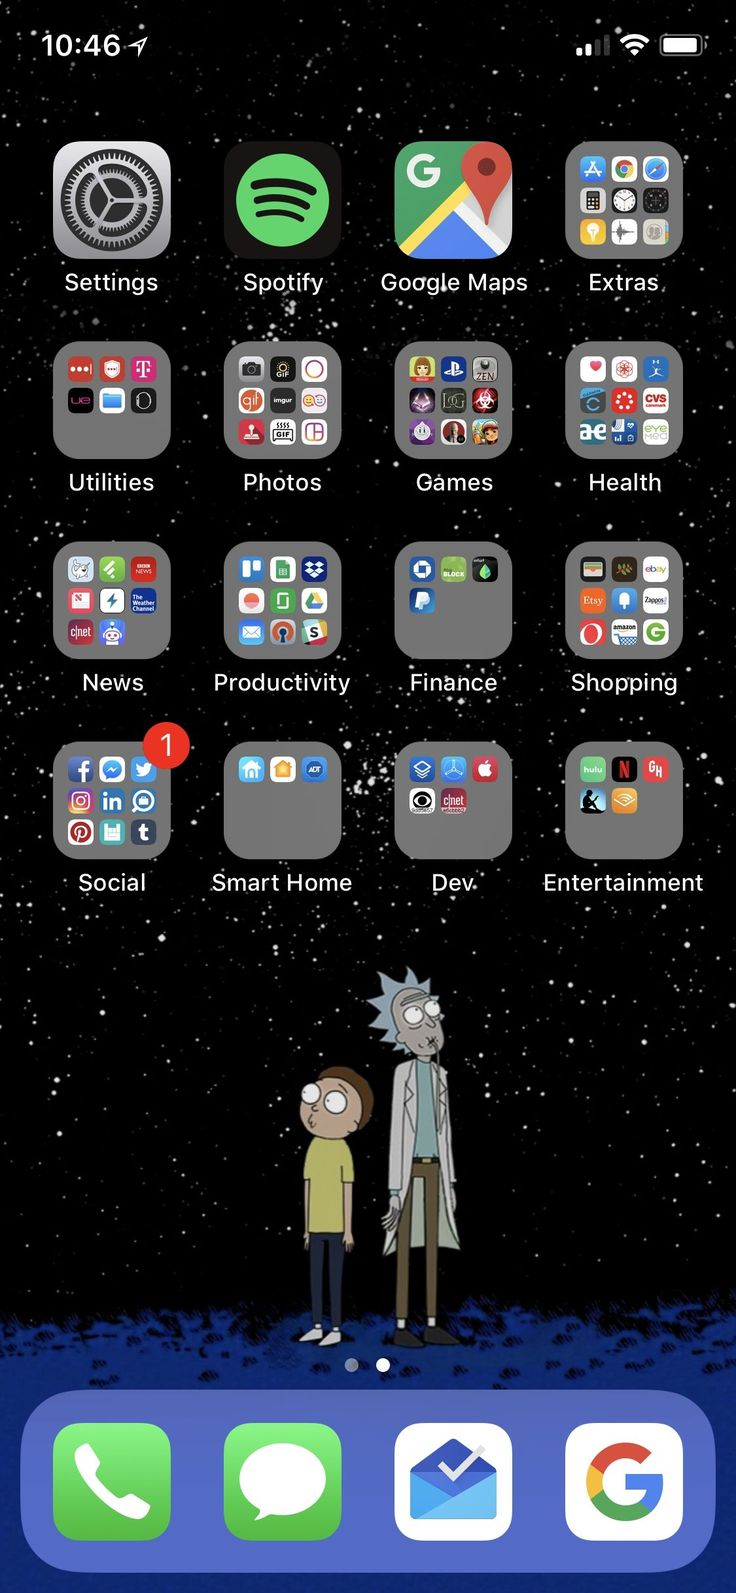 Rick And Morty Wallpaper For Iphone X Album On Imgur With Regard To Rick Morty W 4k Iphone Wallpaper Cartoon Wallpaper Rick And Morty